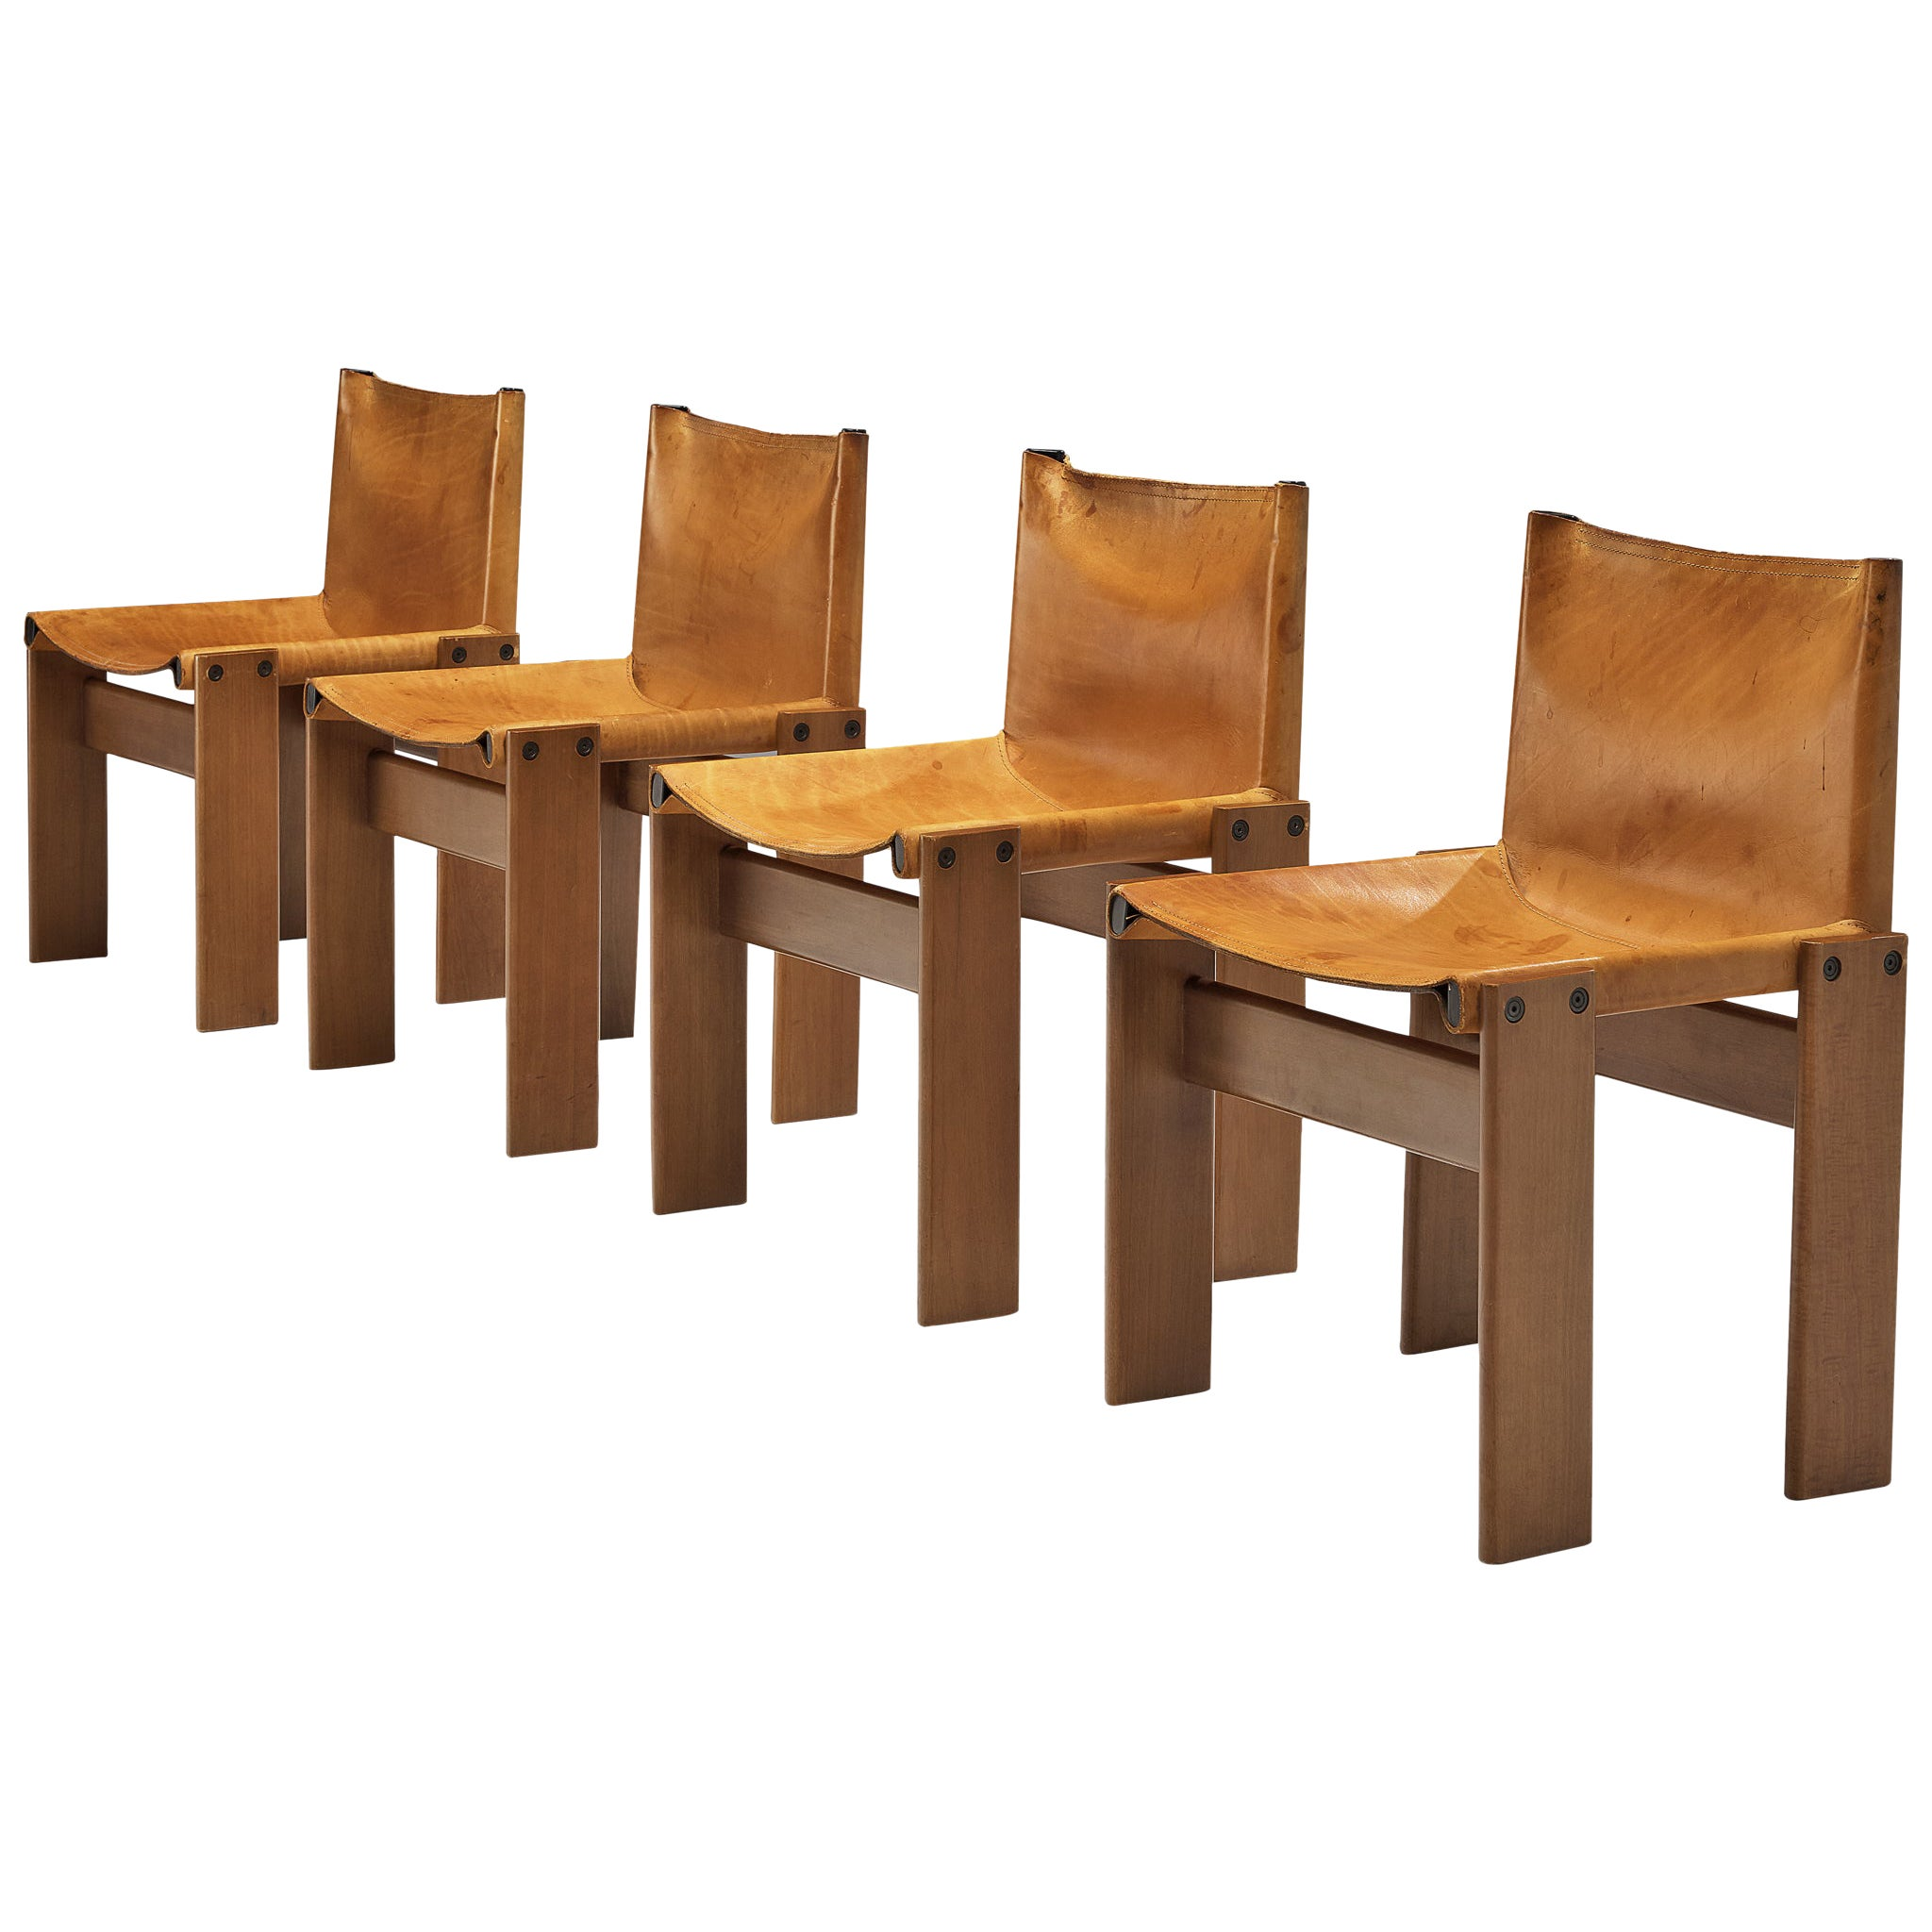 Tobia & Afra Scarpa for Molteni 'Monk' Chairs in Cognac Leather